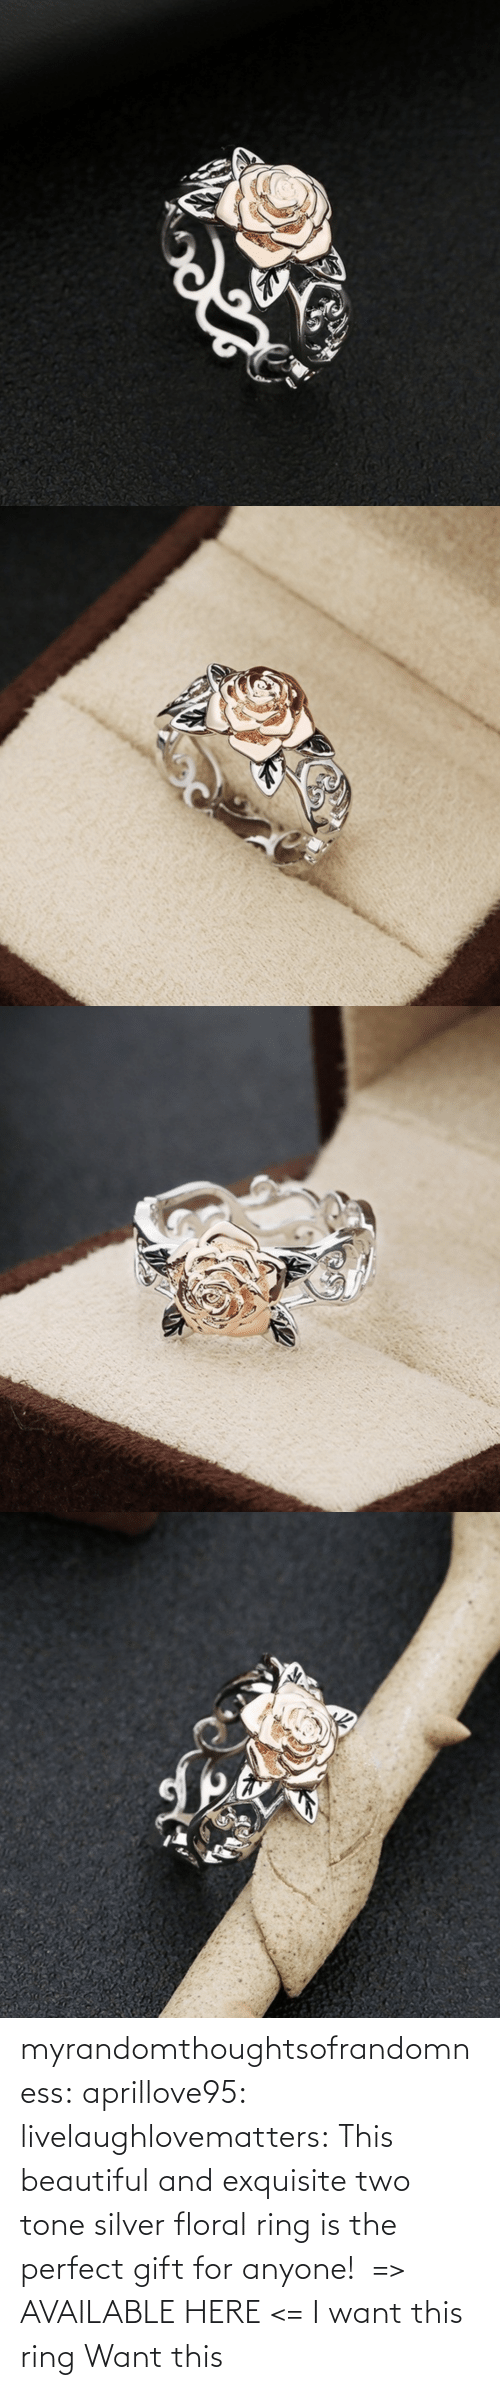 anyone: myrandomthoughtsofrandomness:  aprillove95: livelaughlovematters:  This beautiful and exquisite two tone silver floral ring is the perfect gift for anyone!  => AVAILABLE HERE <=    I want this ring     Want this